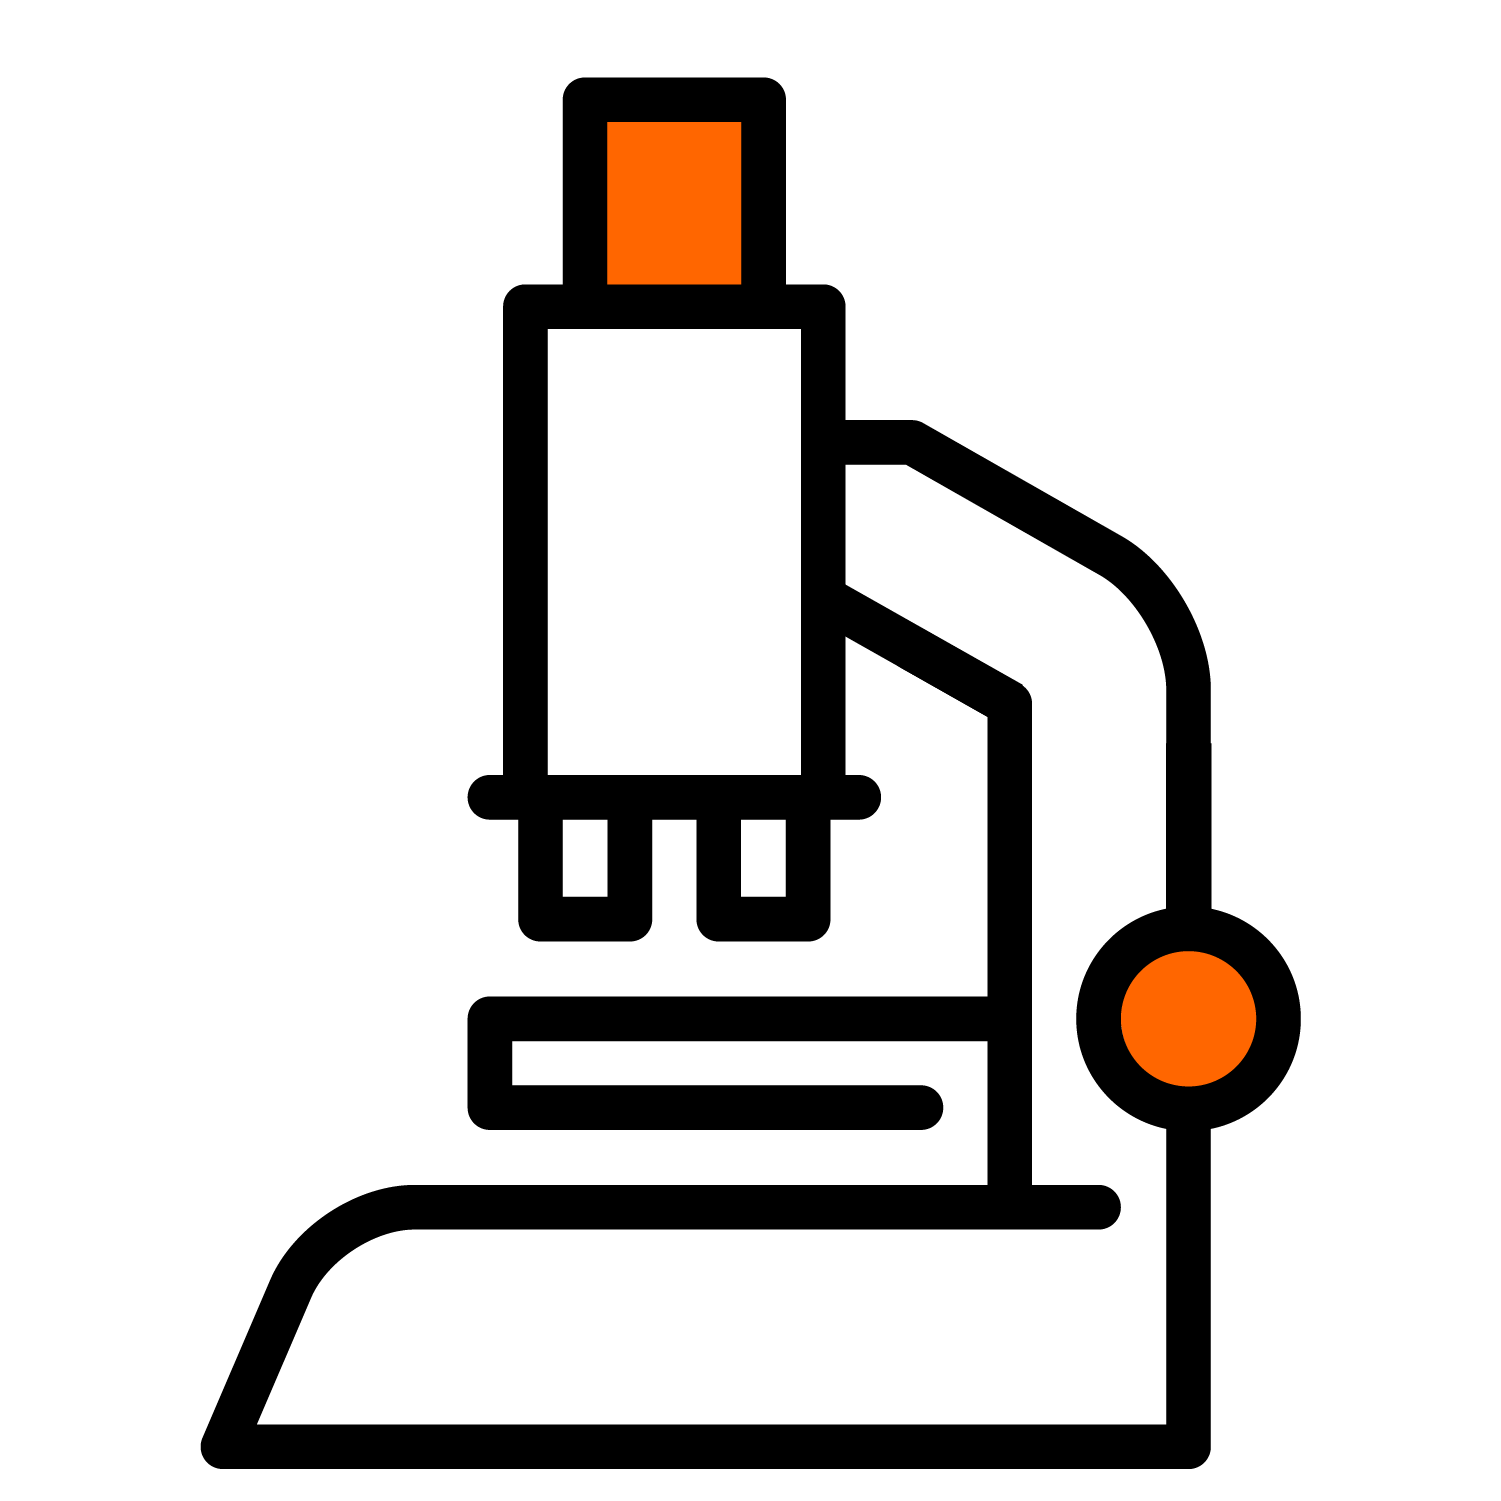 icon of microscope